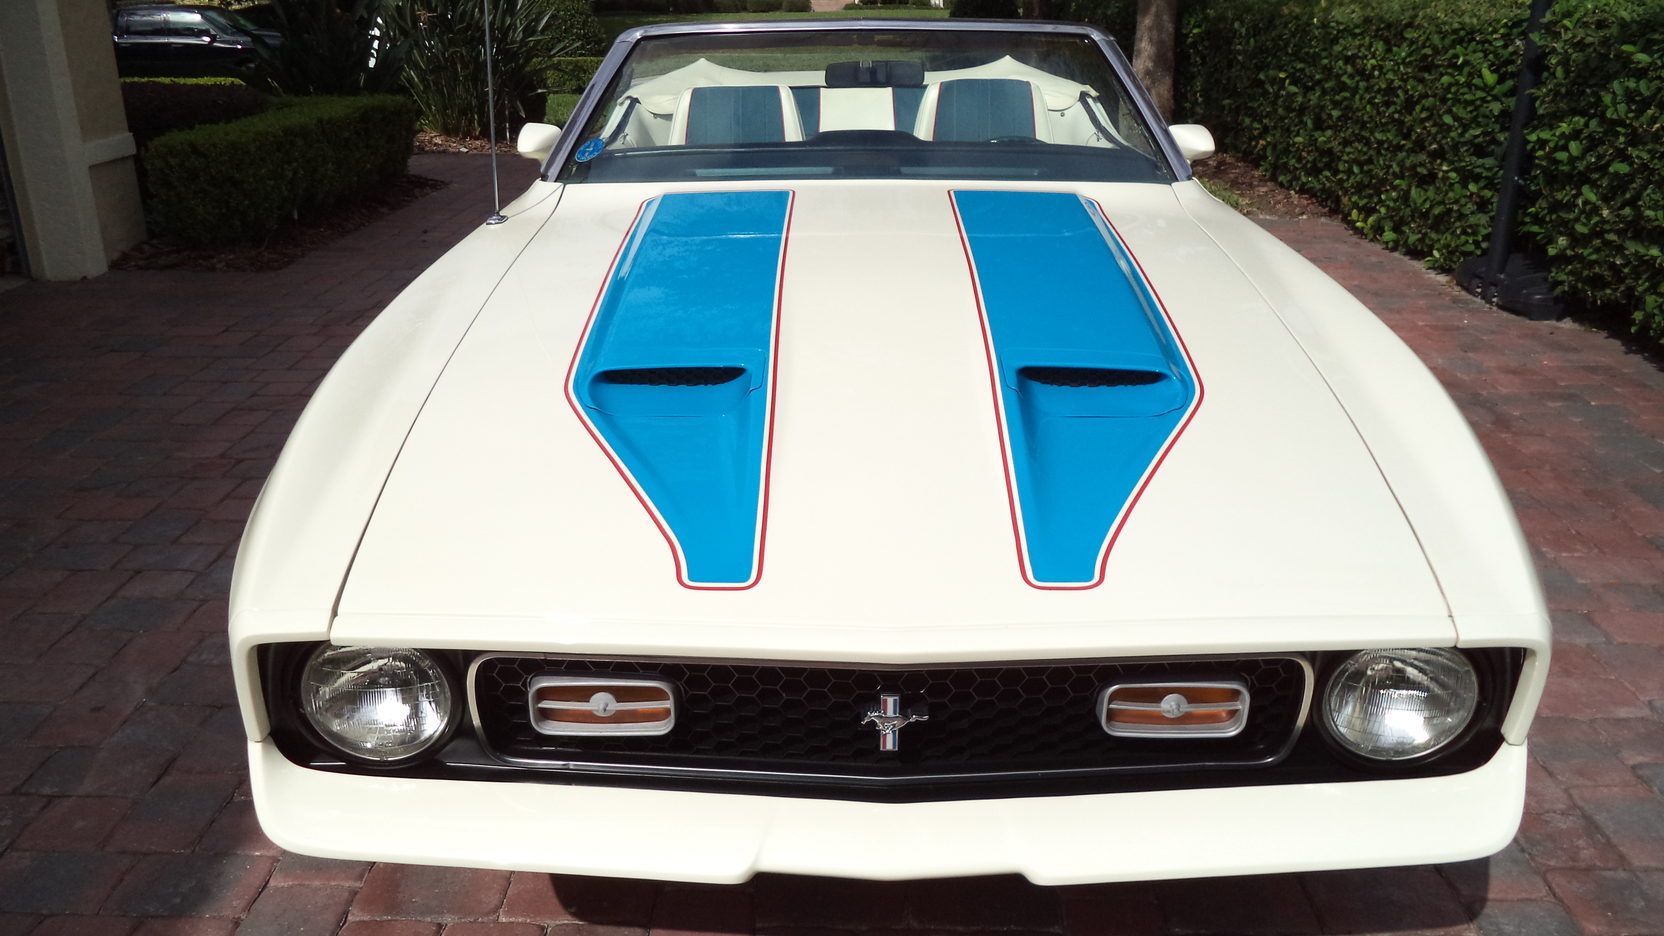 1972 Ford Mustang Sprint USA front end